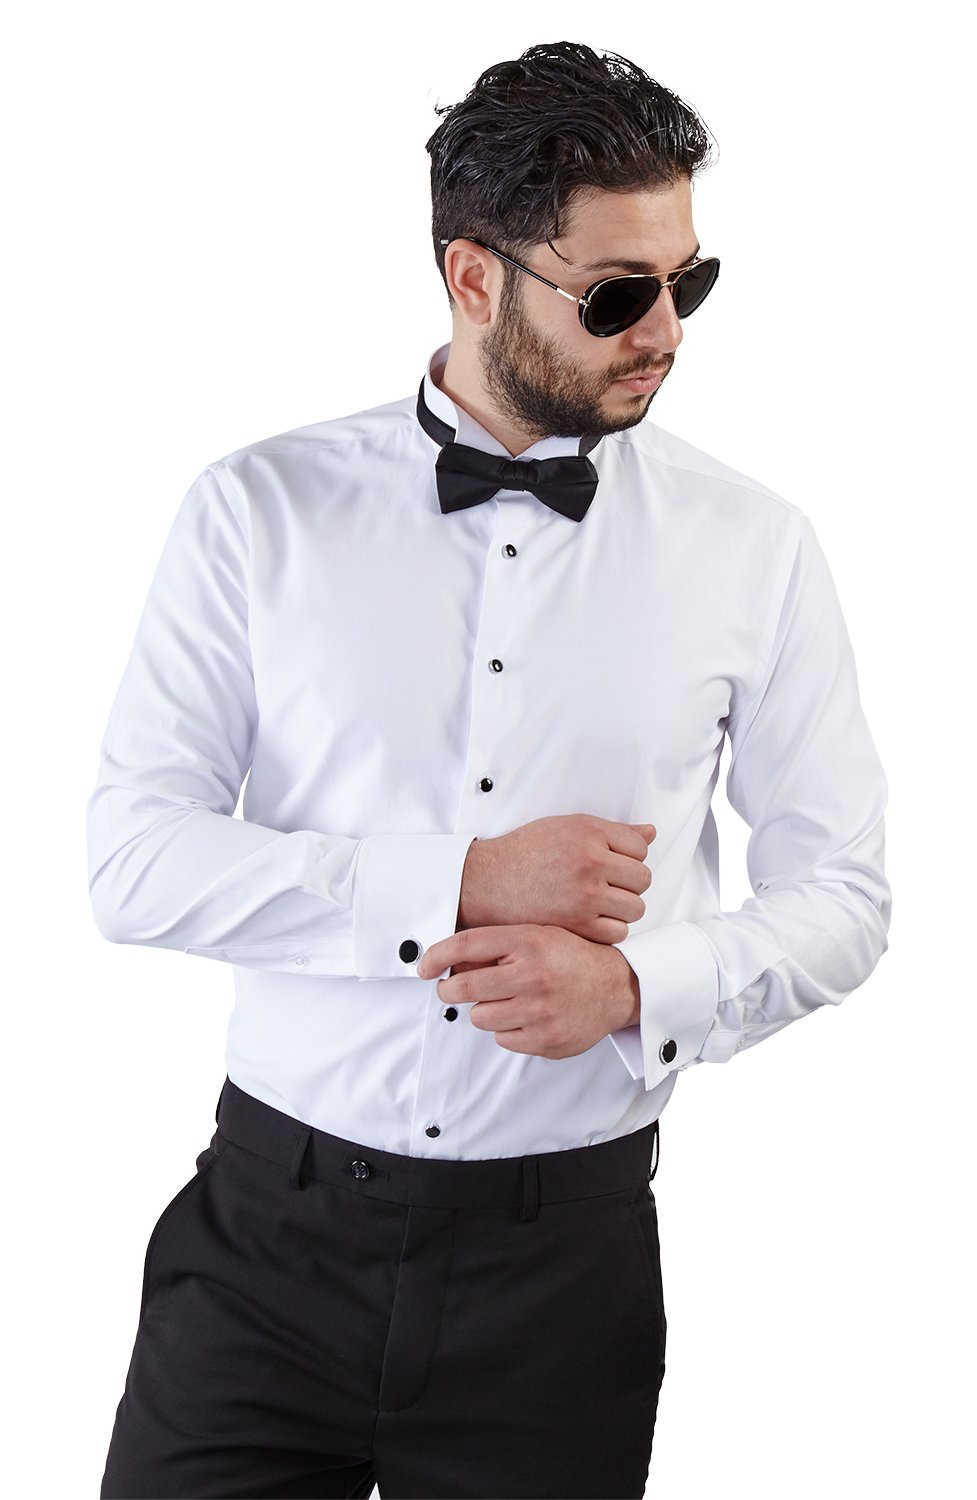 AZAR MAN New Mens Tailored Slim Fit White Wing Tip Tuxedo Shirt French Cuff Wrinkle Free by Azar (Medium 15/15.5) by AZAR MAN